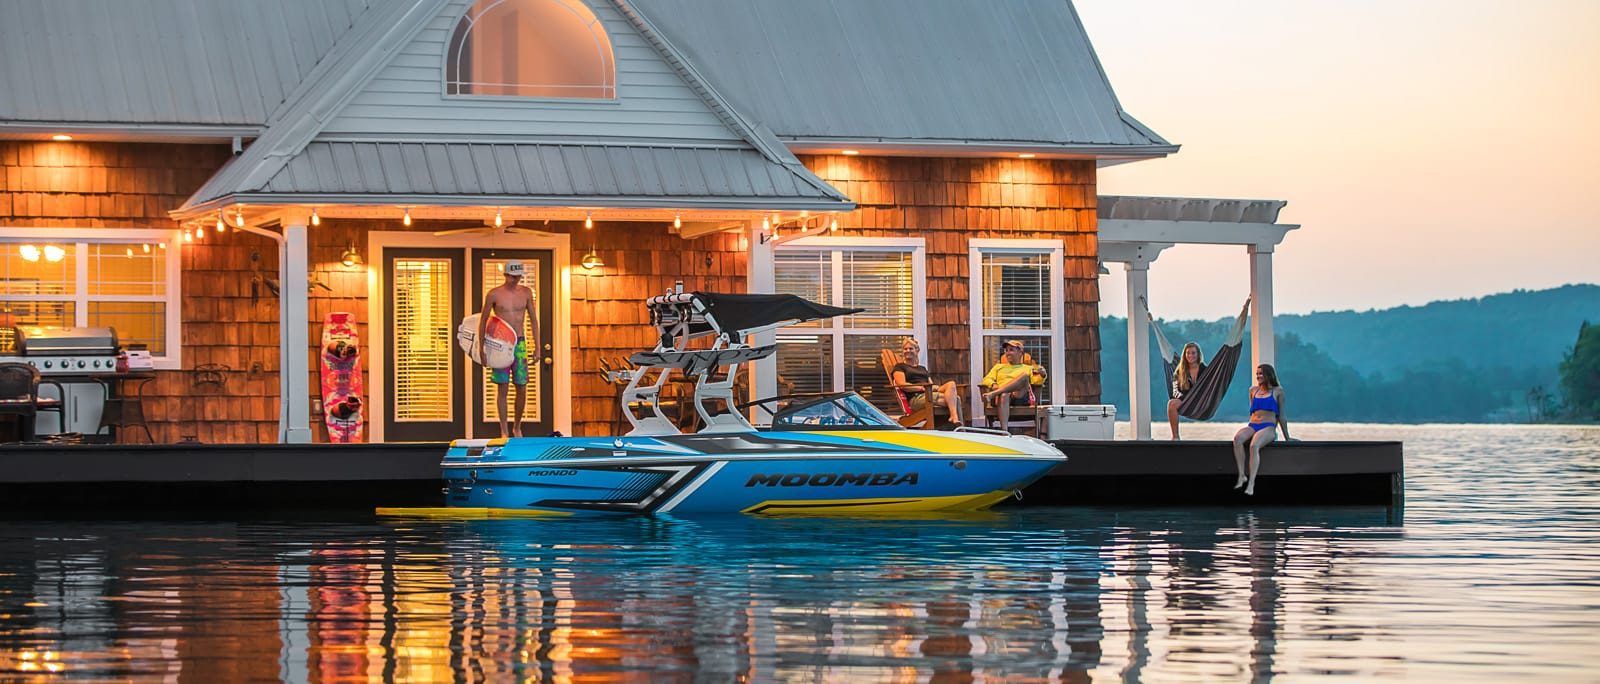 A family gets onto a Mailibu wakeboard boat on a boat dock